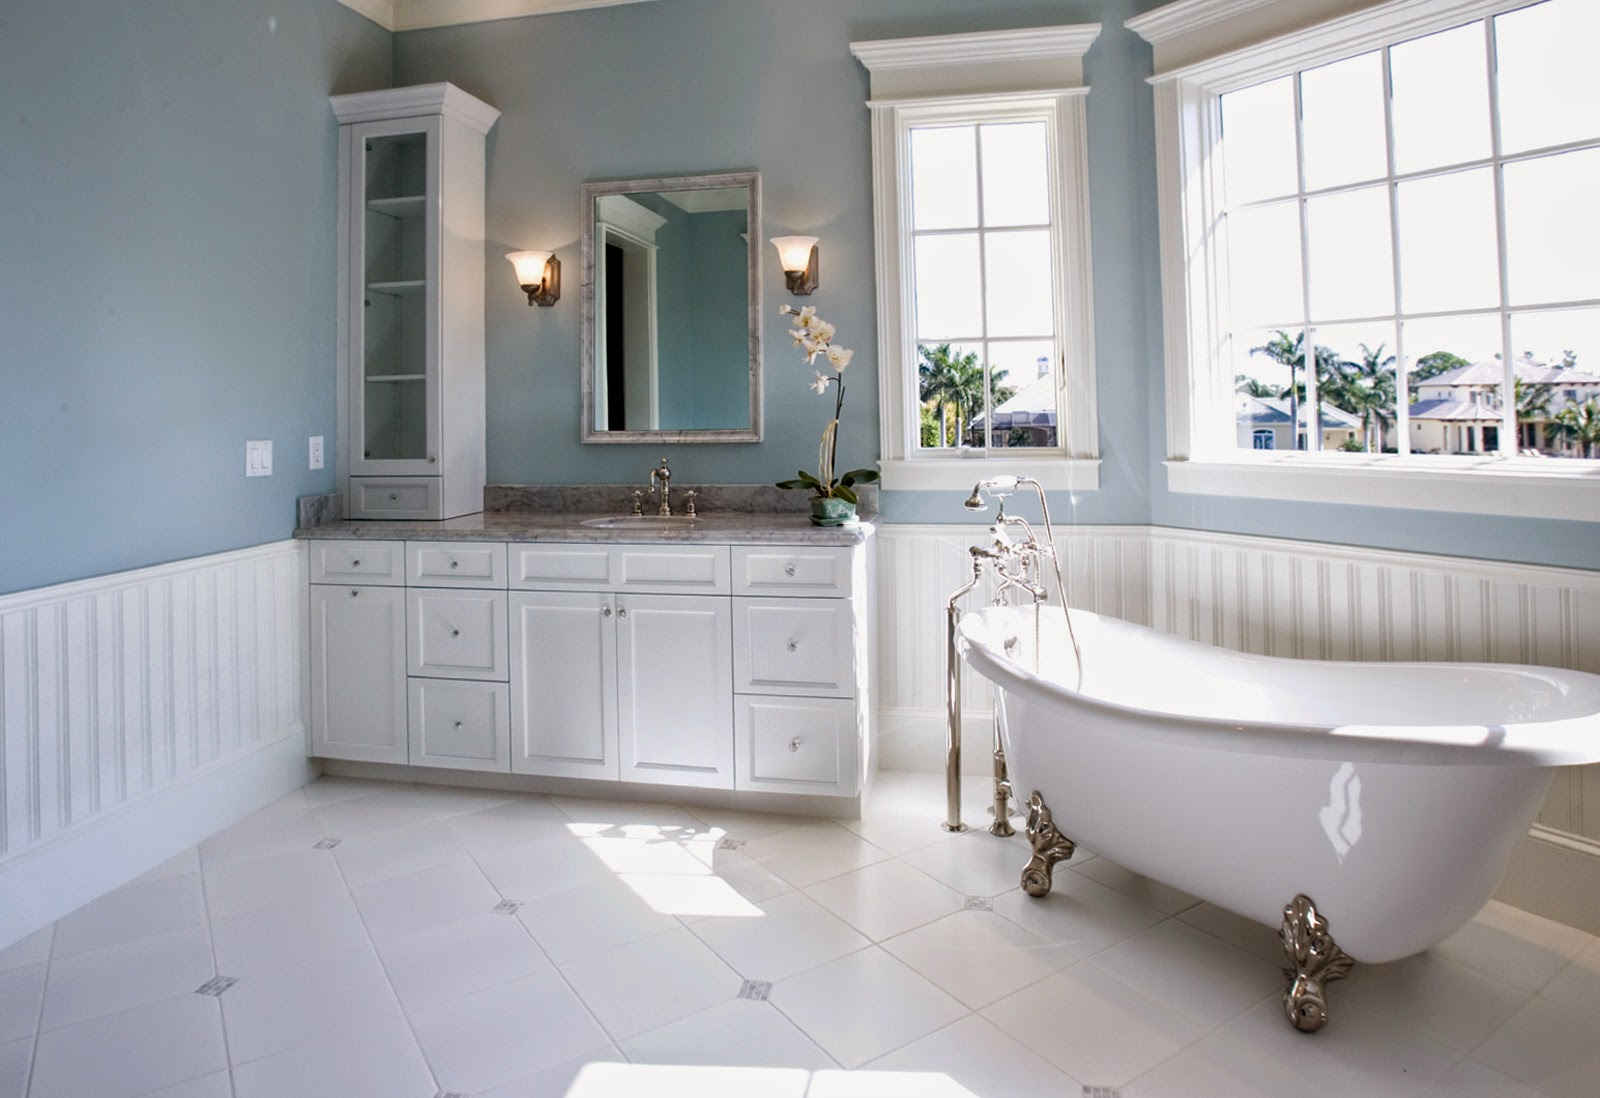 Top 10 beautiful bathroom design 2014 home interior blog for Photographs of bathrooms